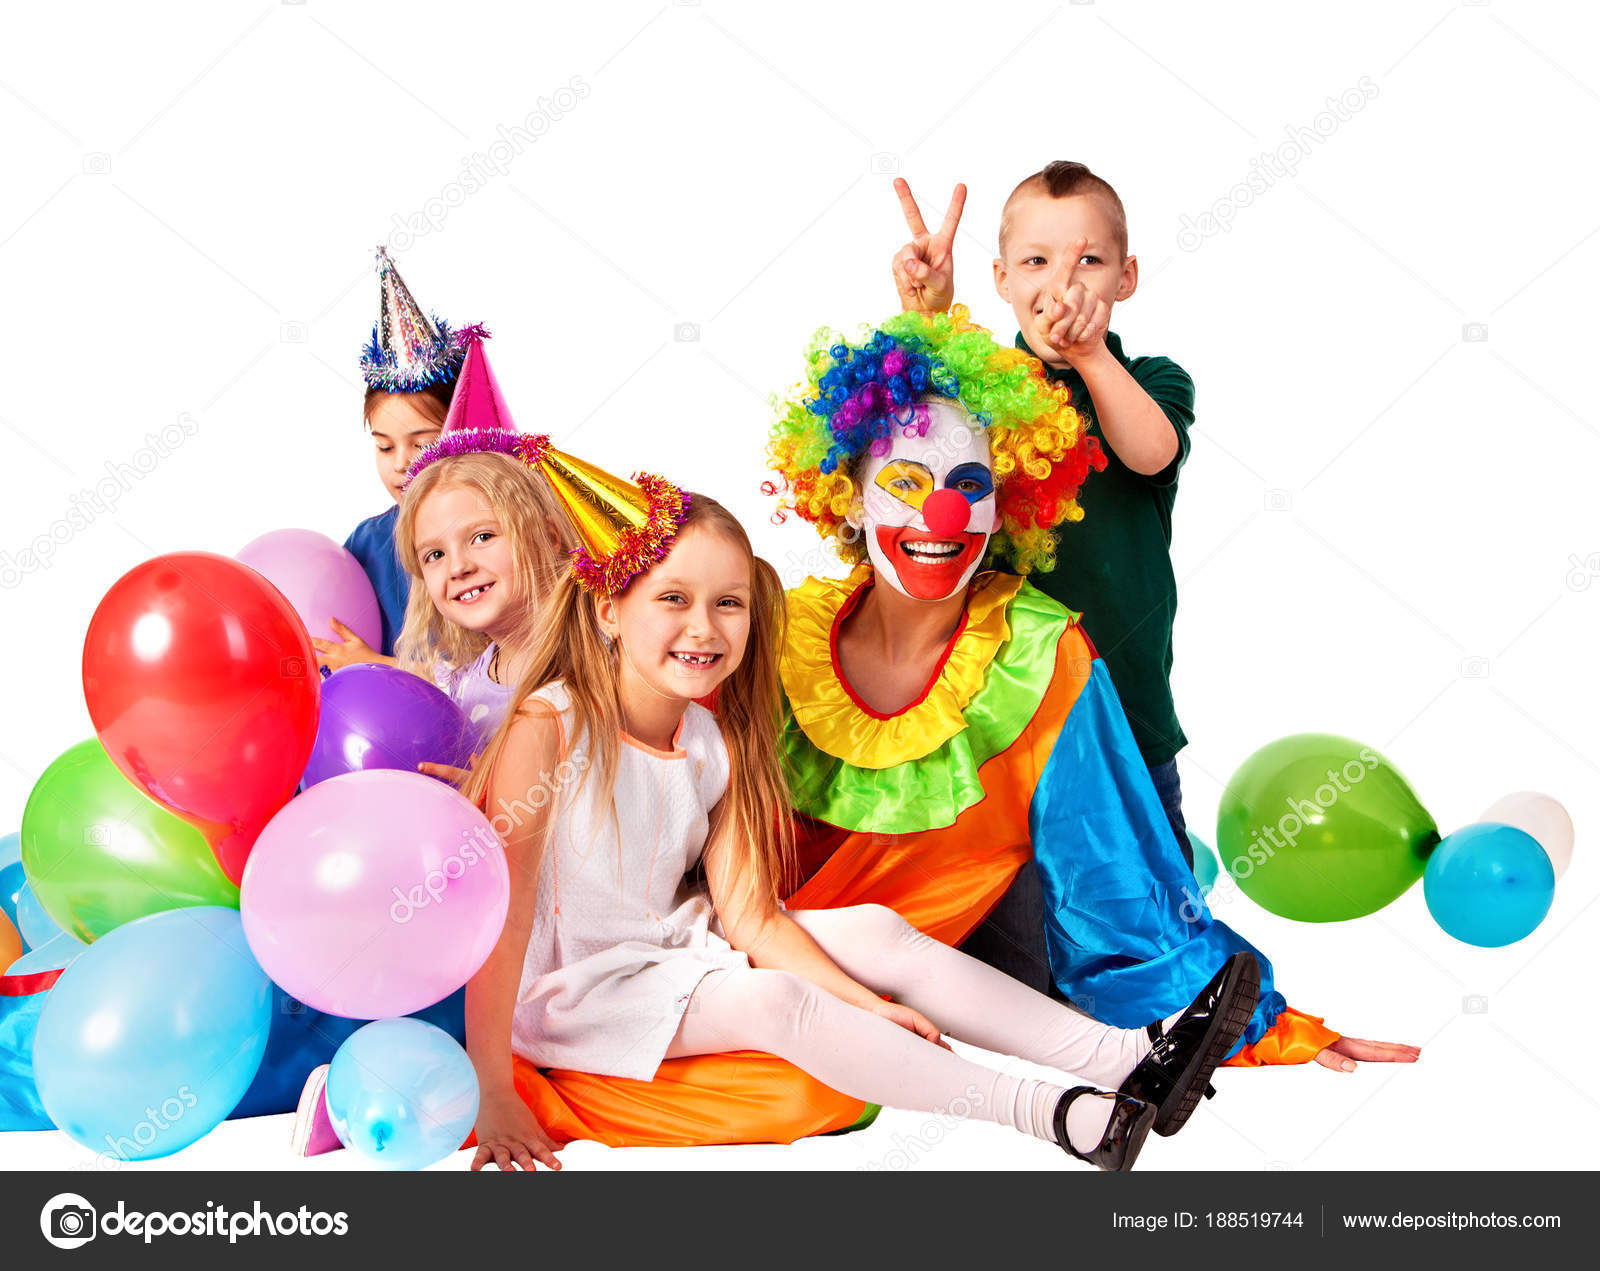 Birthday Child Clown Playing With Children And Bunny Fingers Prank Kid Holiday Cakes Celebratory Balloons The Happiest